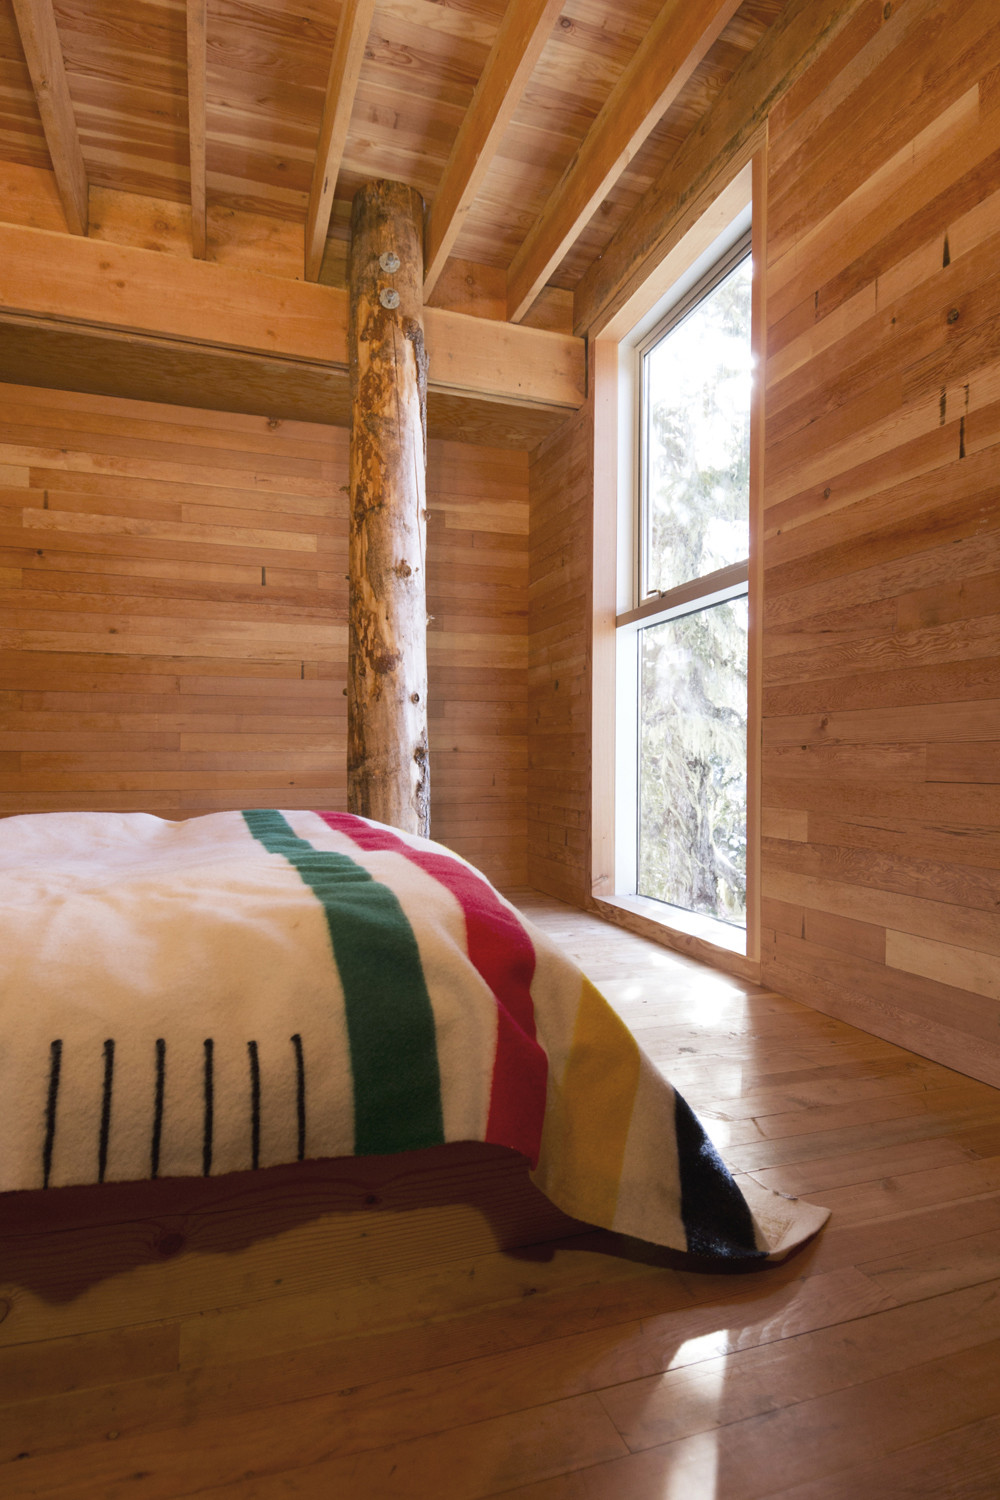 Bedroom of the cabin with a view of the snowy slopes above